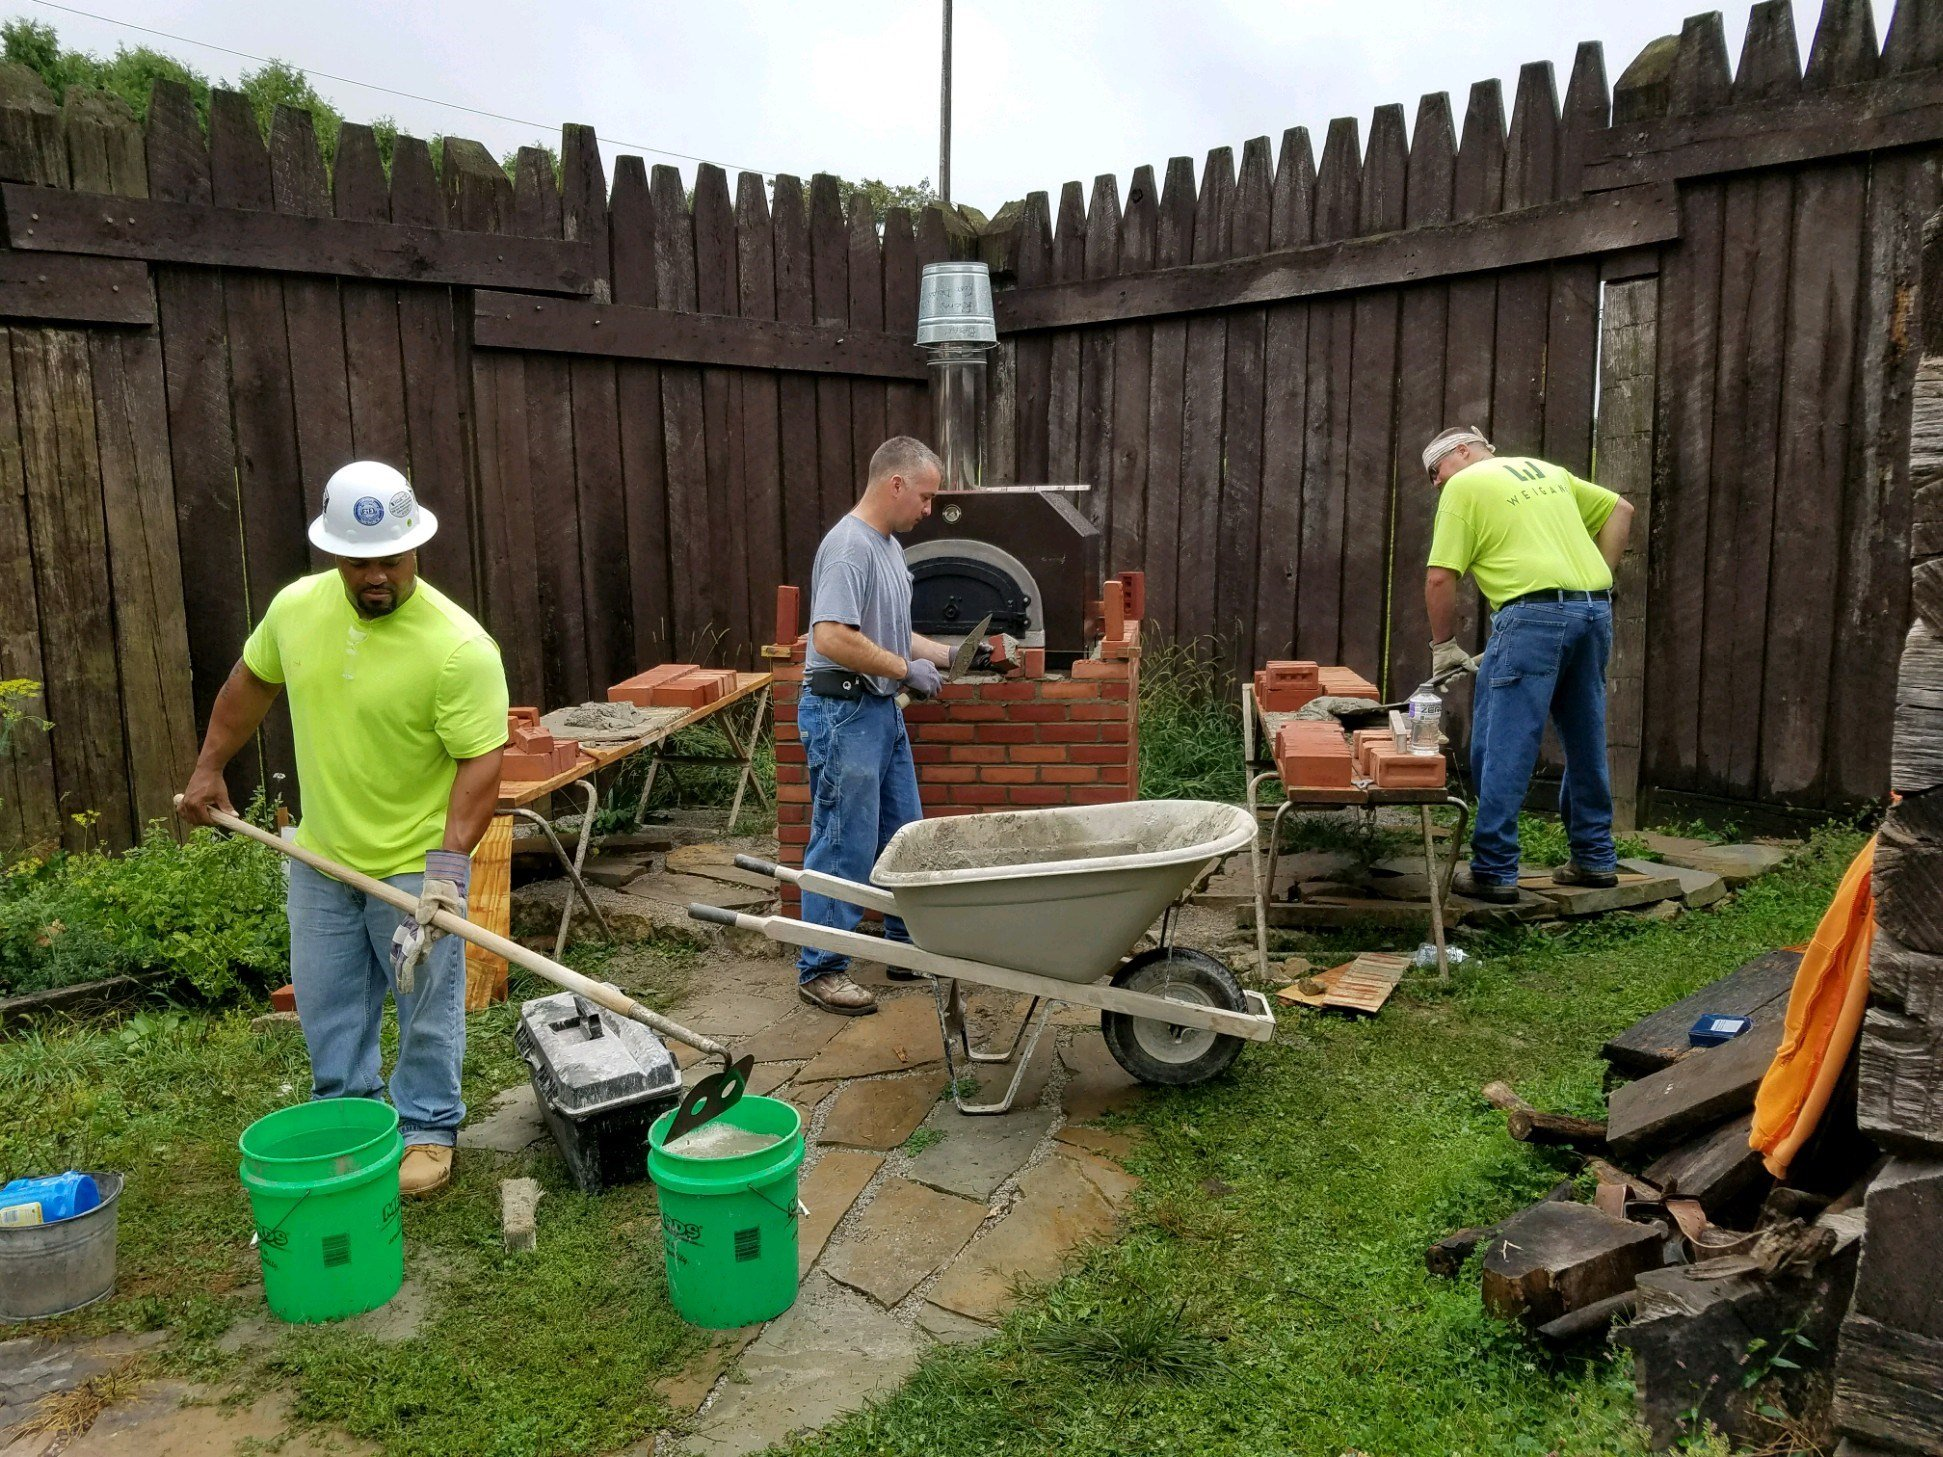 Local unions, Bricklayers Local 4 and Laborers Local 213, teamed up and donated their time to help install a new bake oven at the Old Fort to be used for wood fire brick oven cooking demonstrations. (Photo//Historic Fort Wayne)